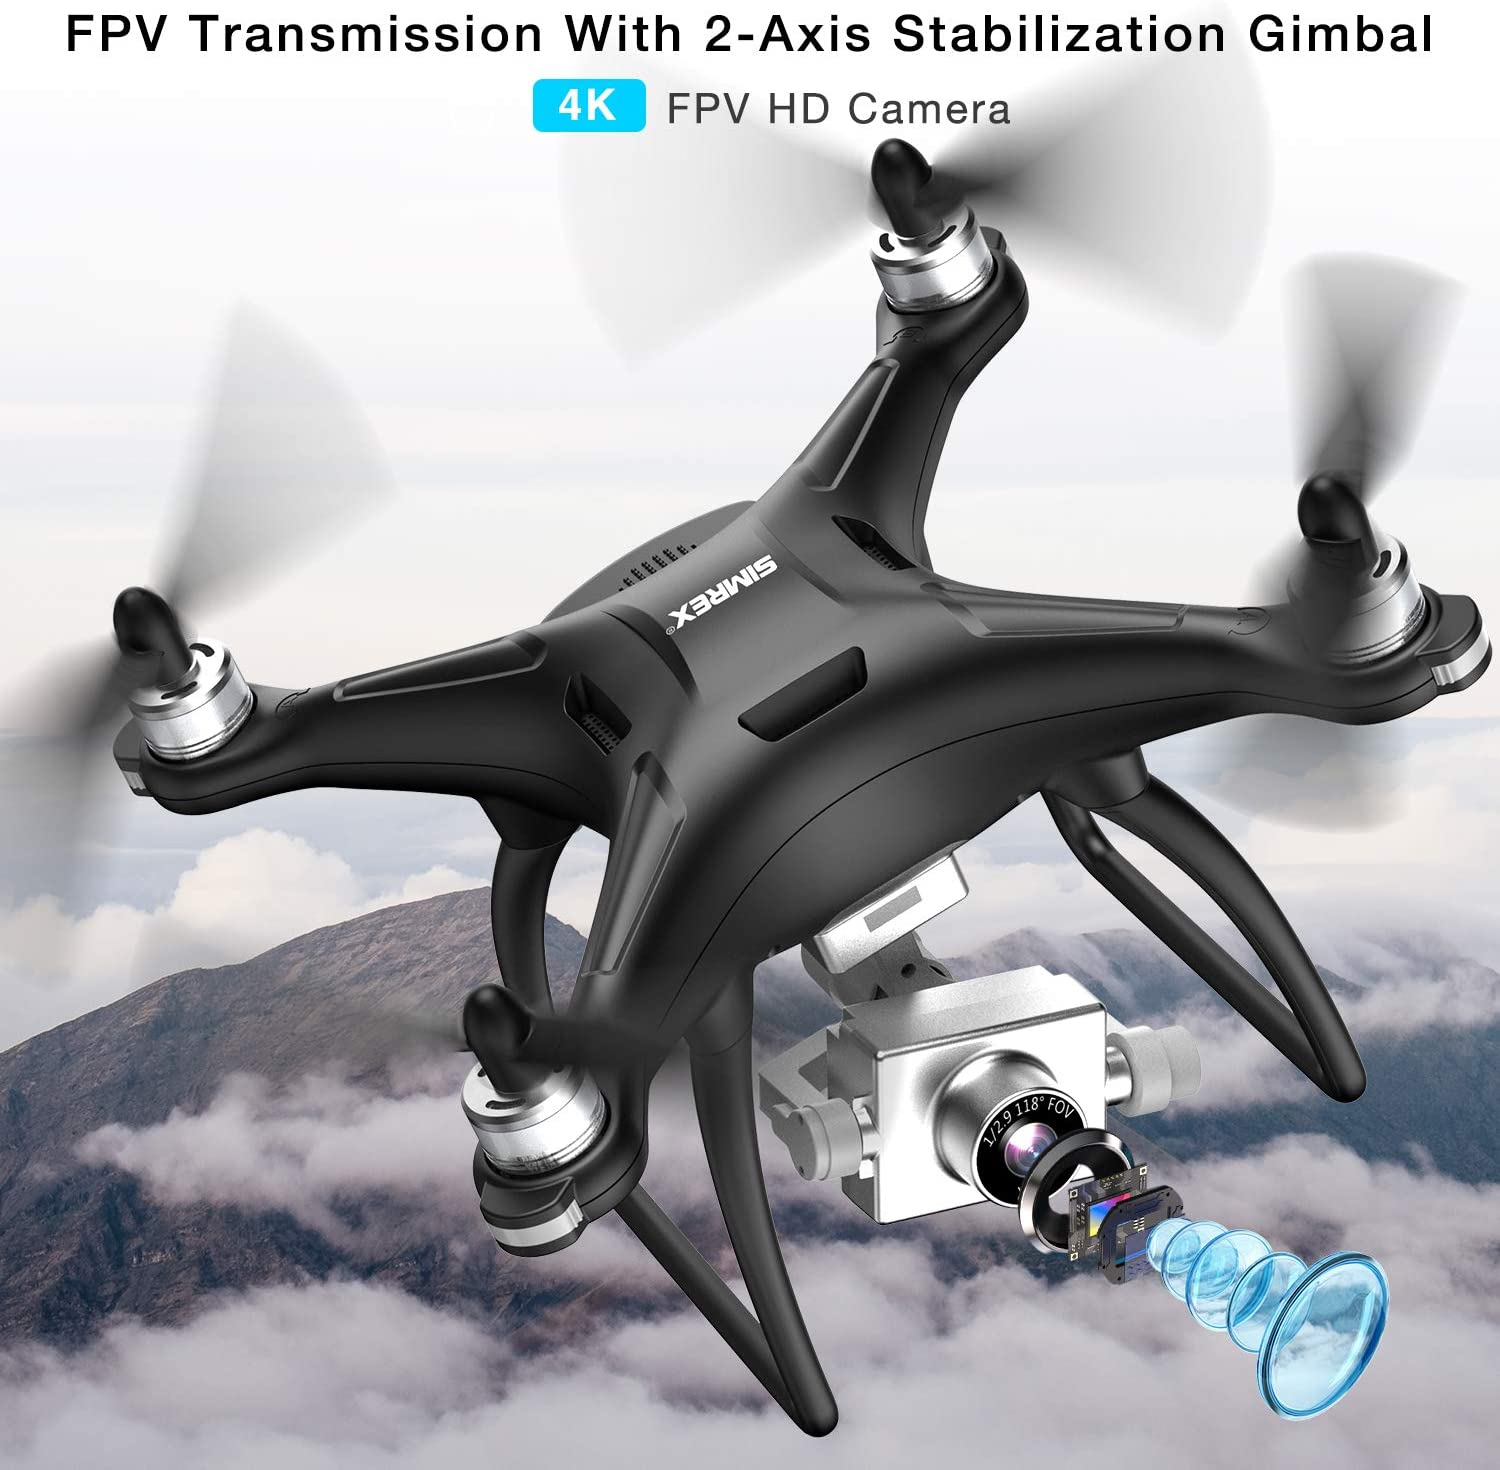 Simrex x11 fpv drone is at #4 for best drones under 150 dollars